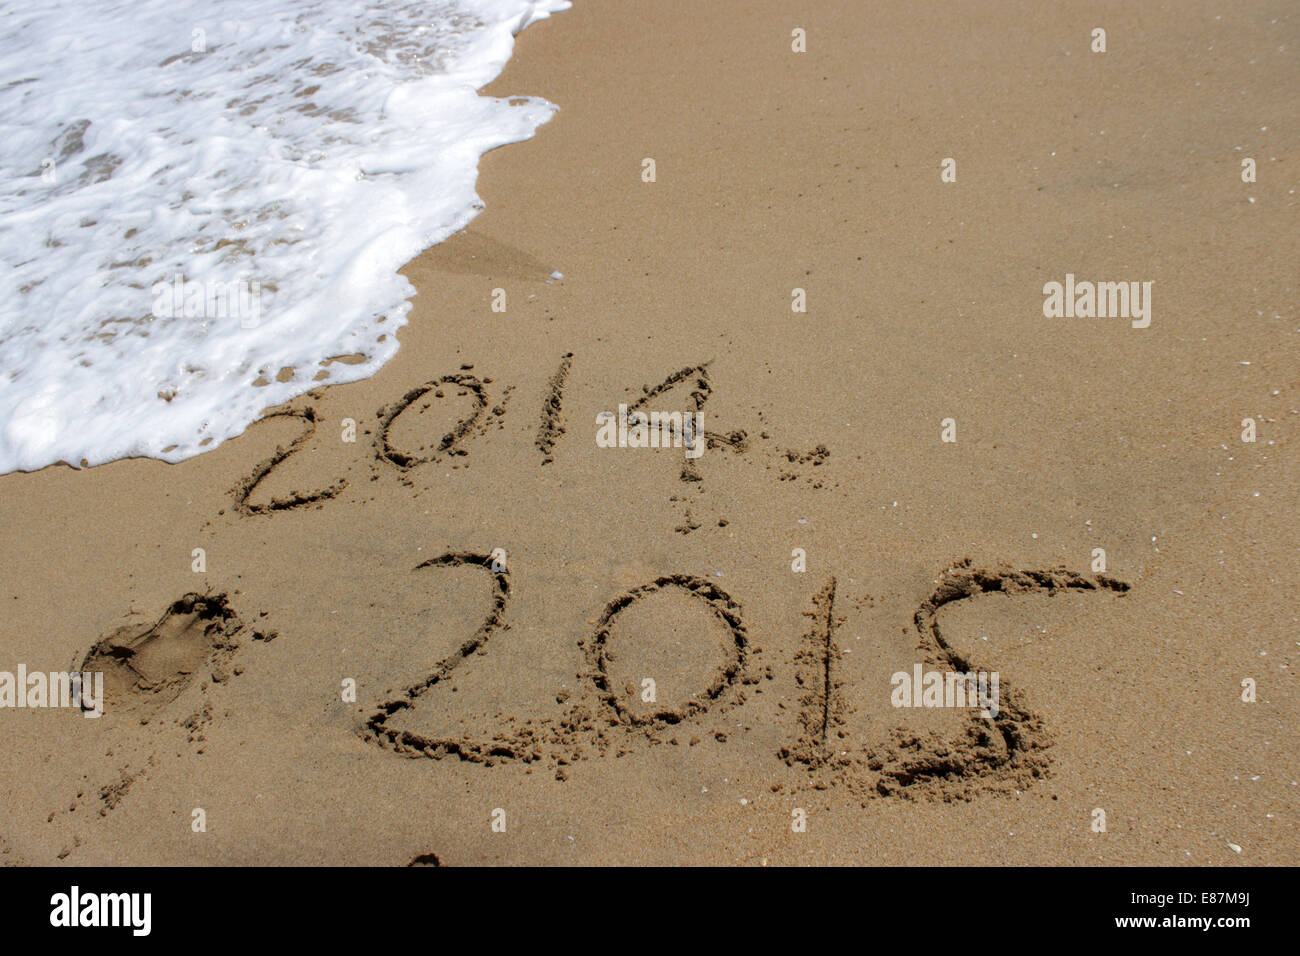 New Year 2014-2015 wish - Stock Image